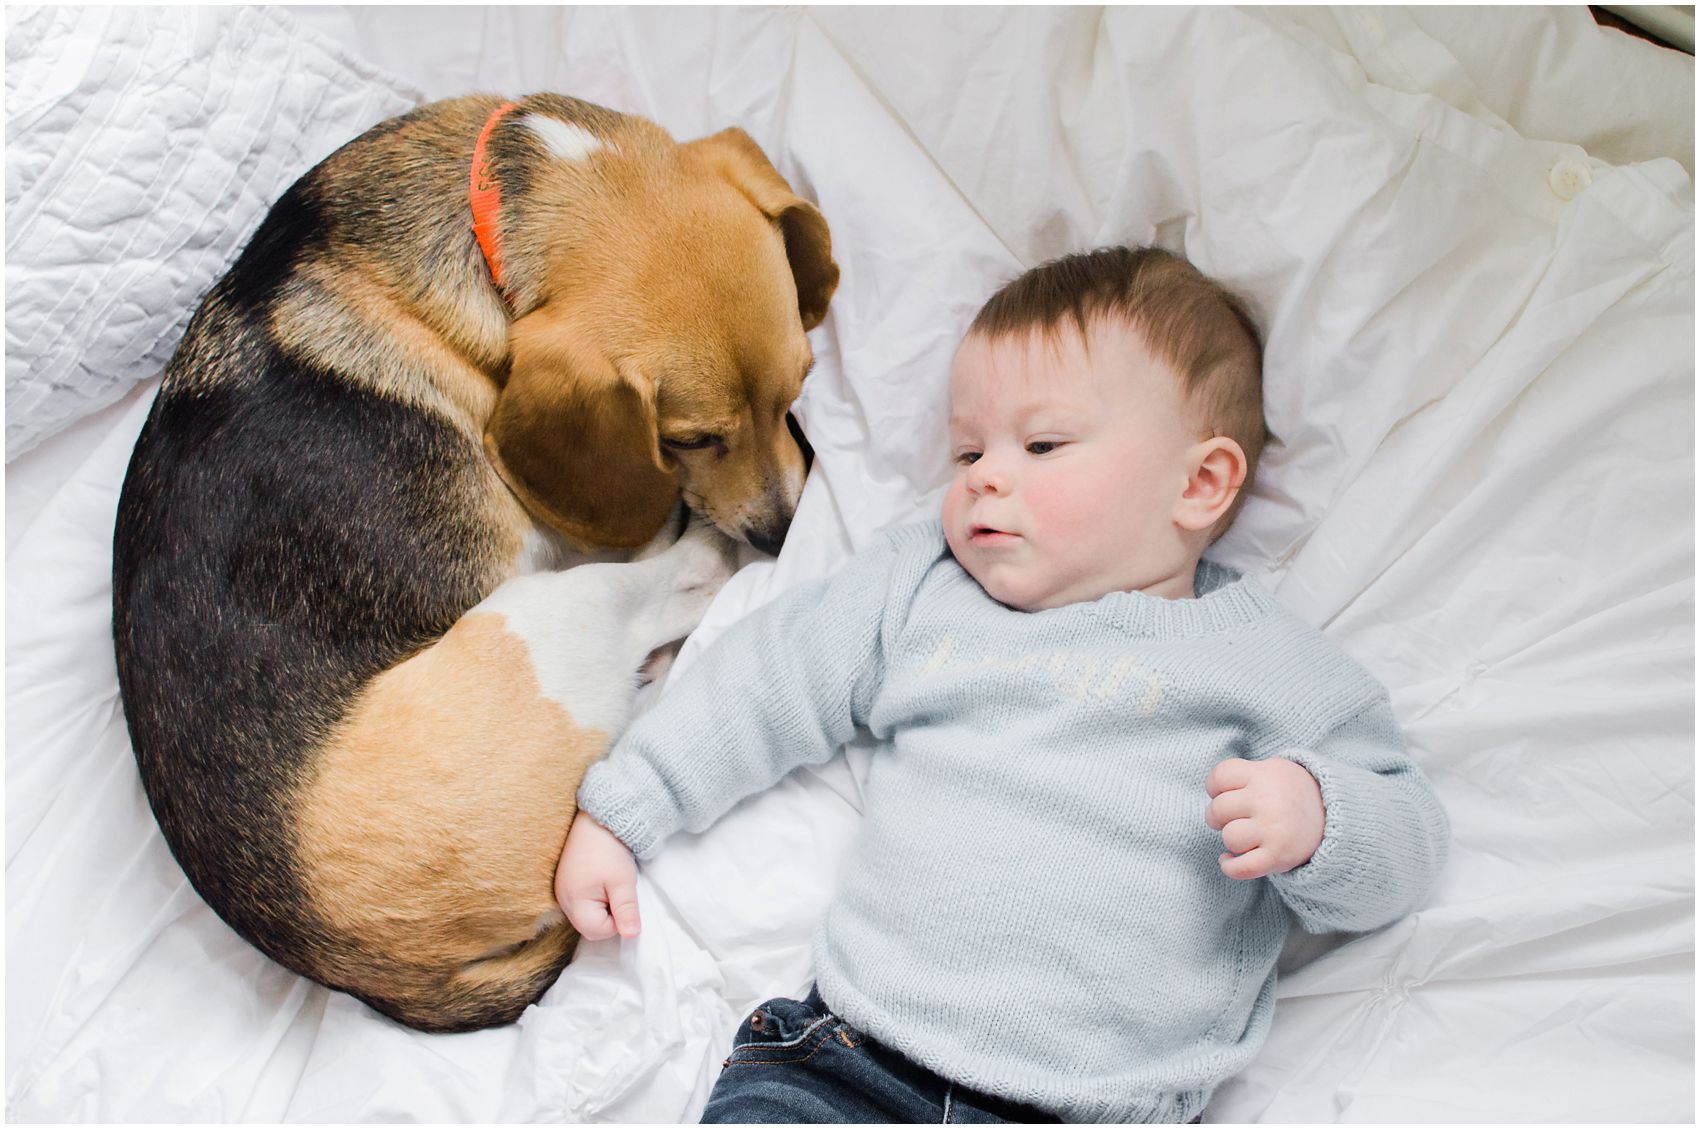 snuggle time with the baby boy and the cozy dog